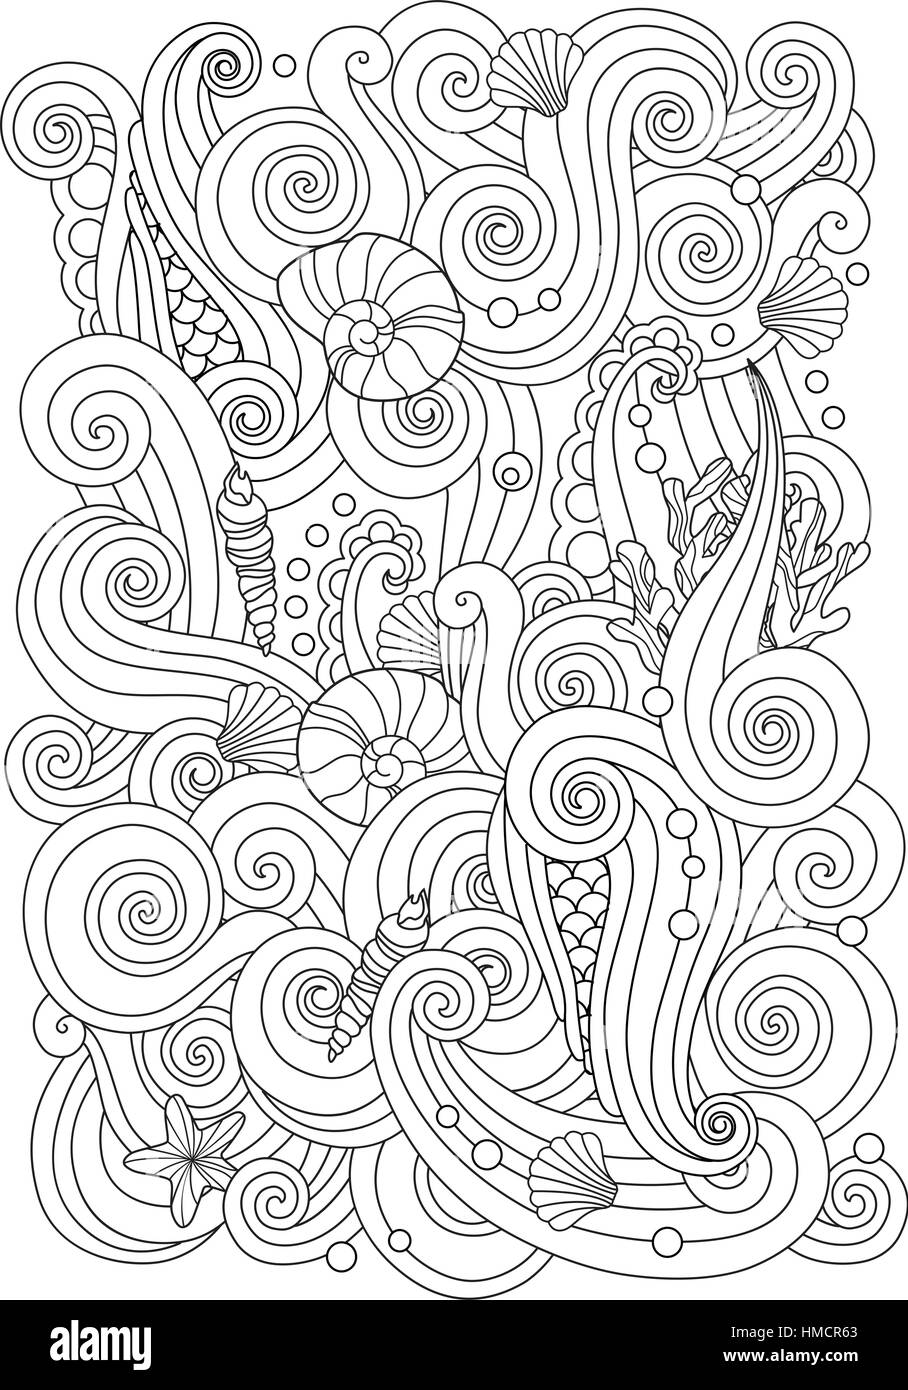 Coloring page with abstract sea background waves, shells, corals ...